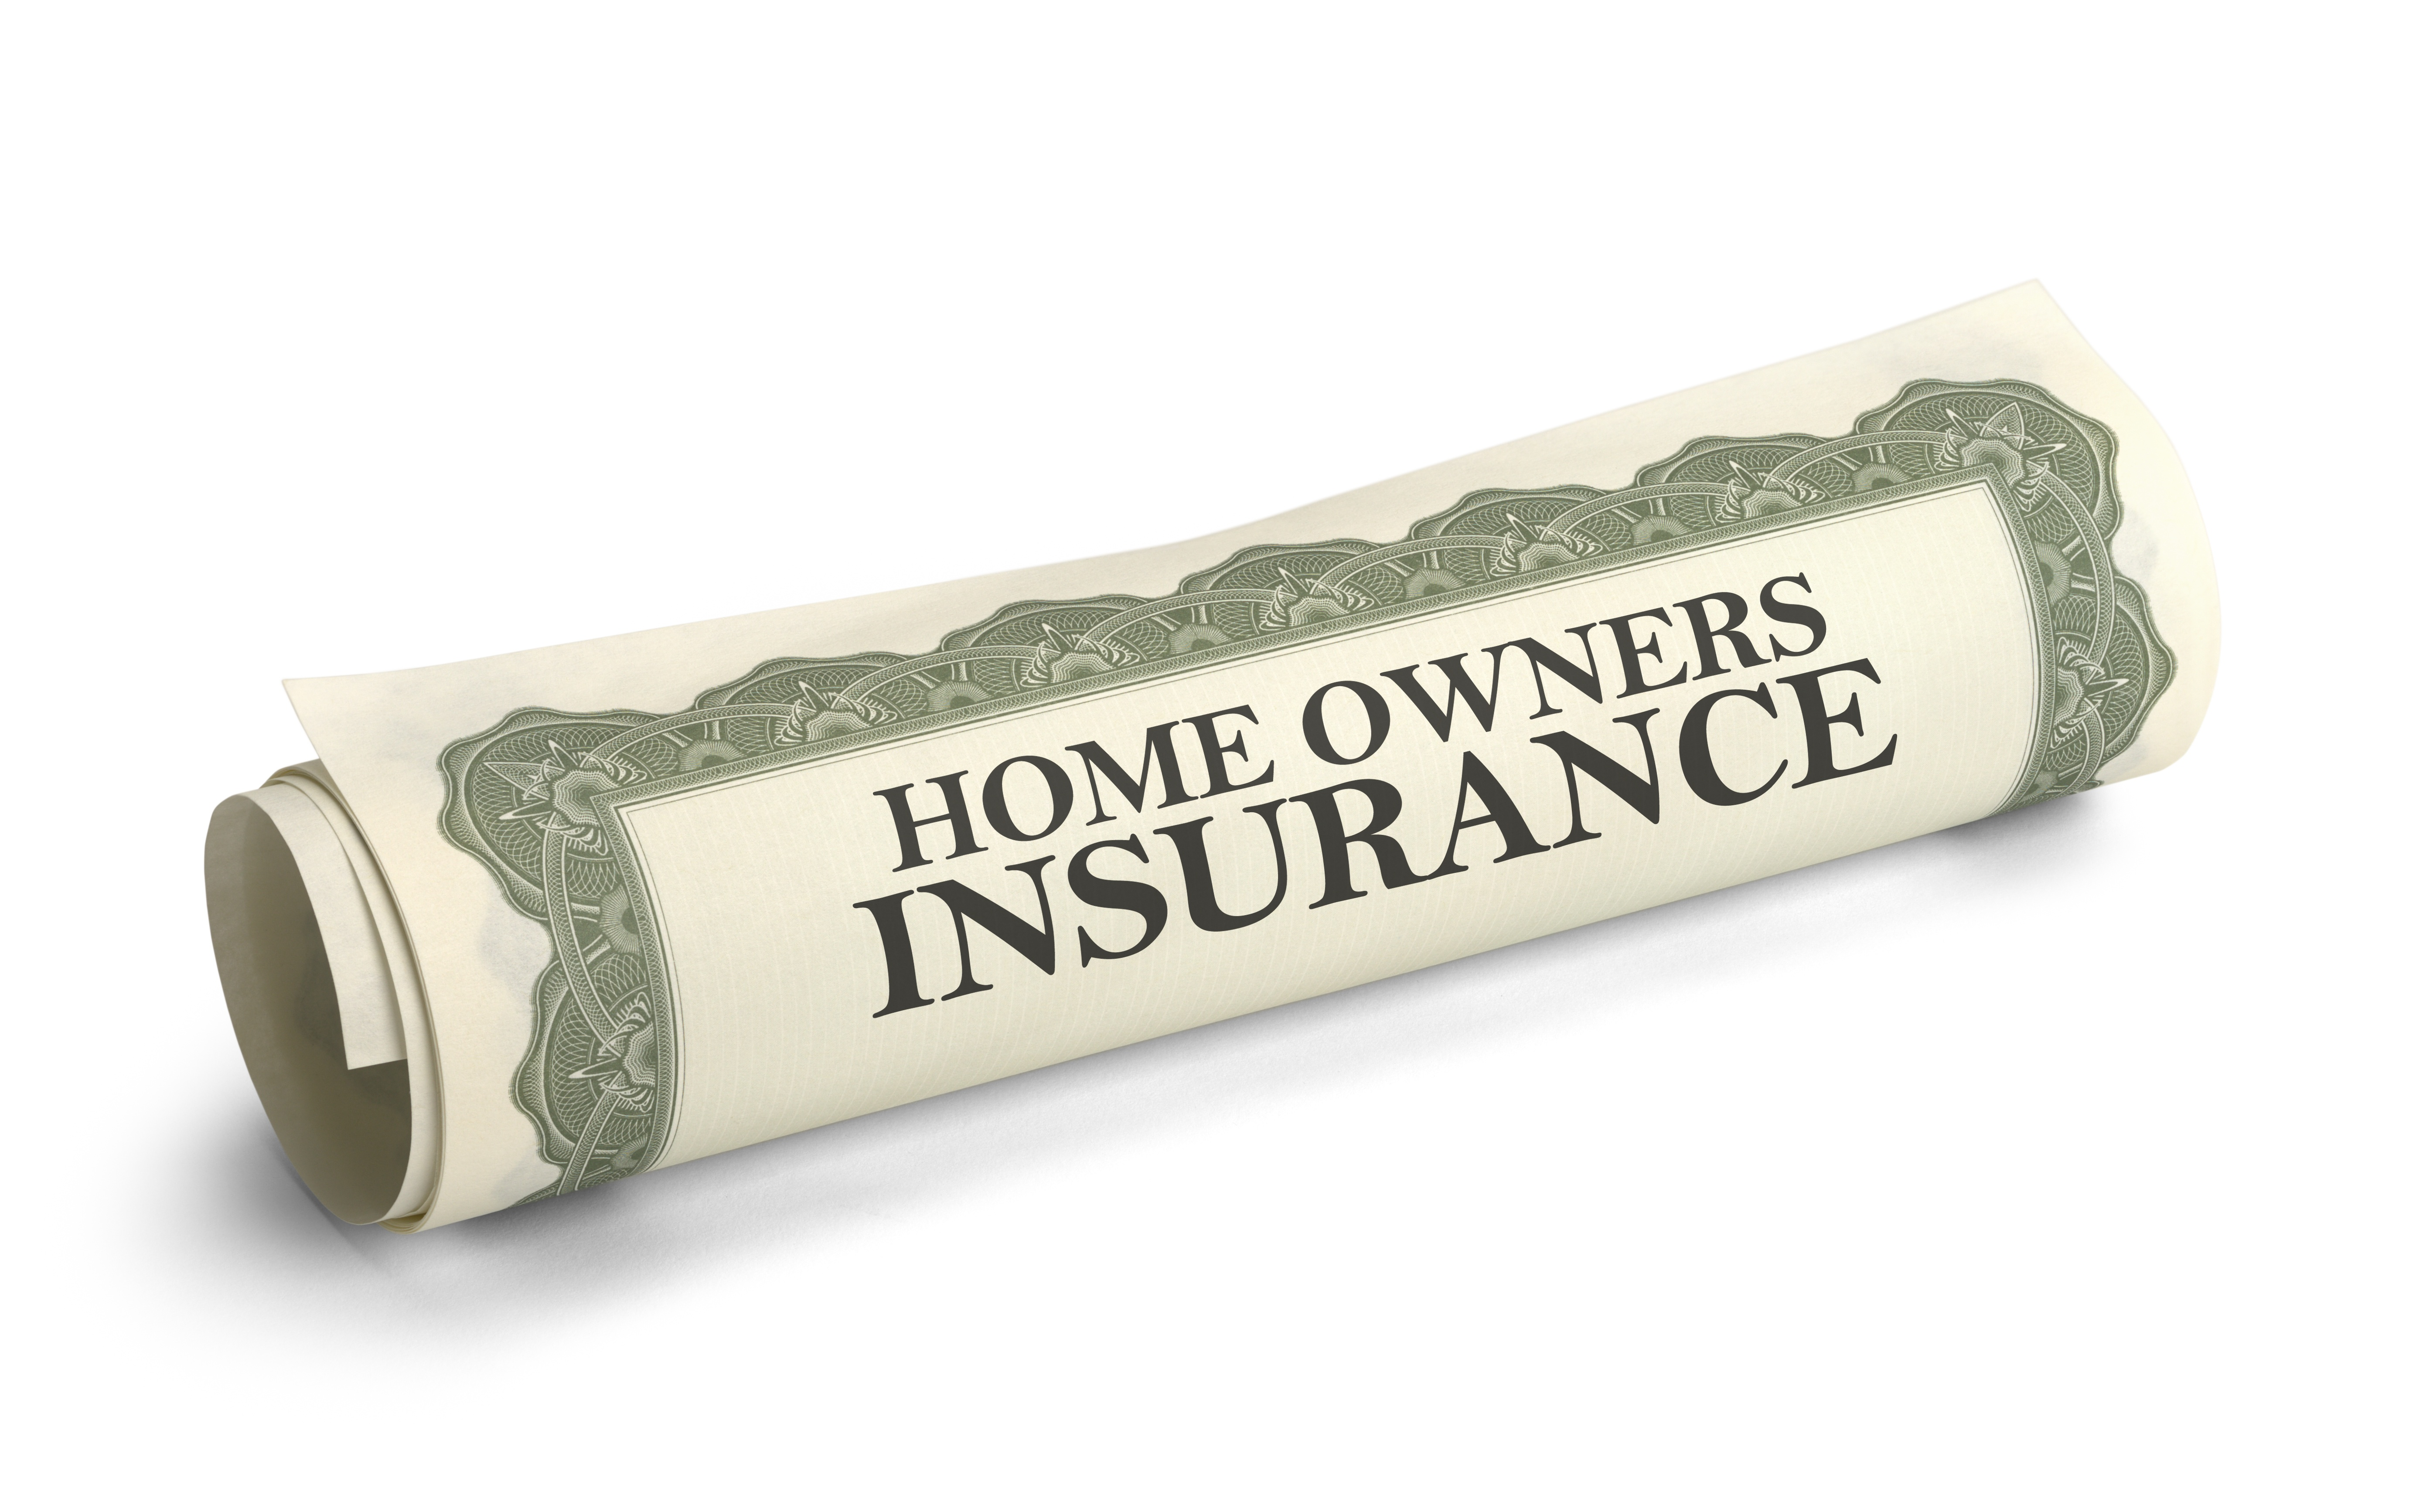 CT Roof Damage: Does Homeowner's Insurance Cover Roof Repair?